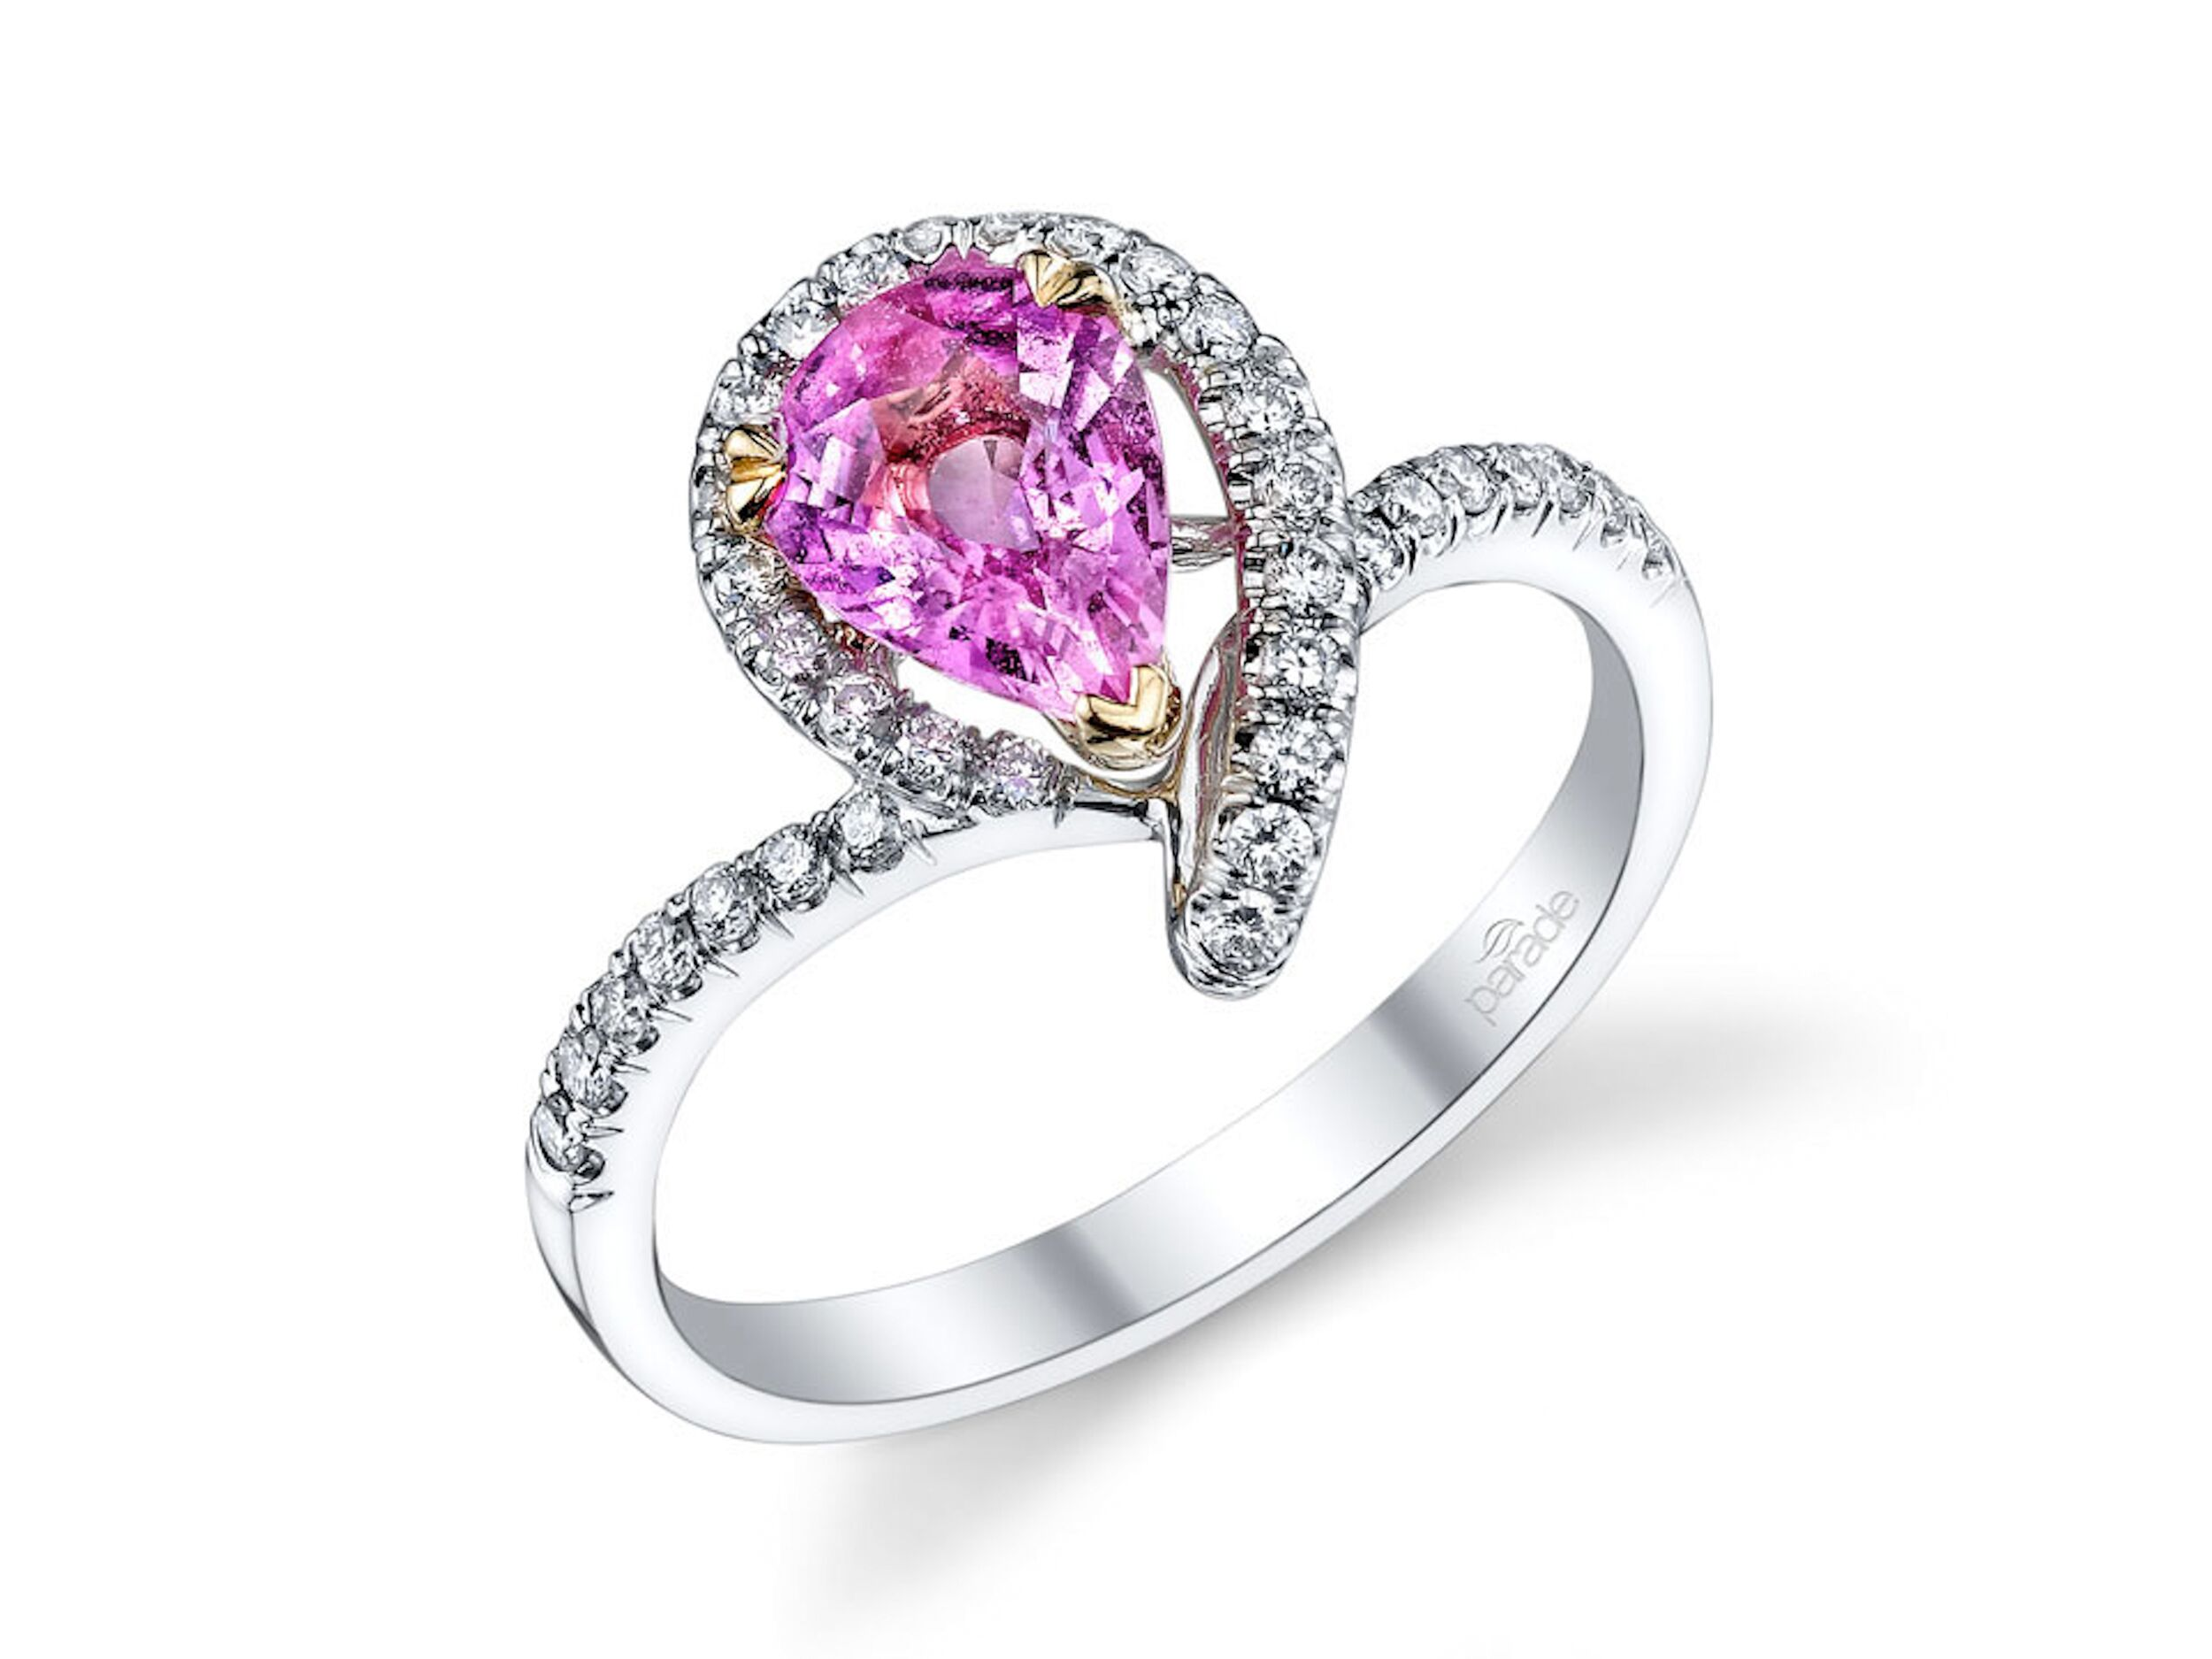 set and diamond in band engagement with pink product rose jewellery jewelry style kwiat radiant fancy ring halo rings gold